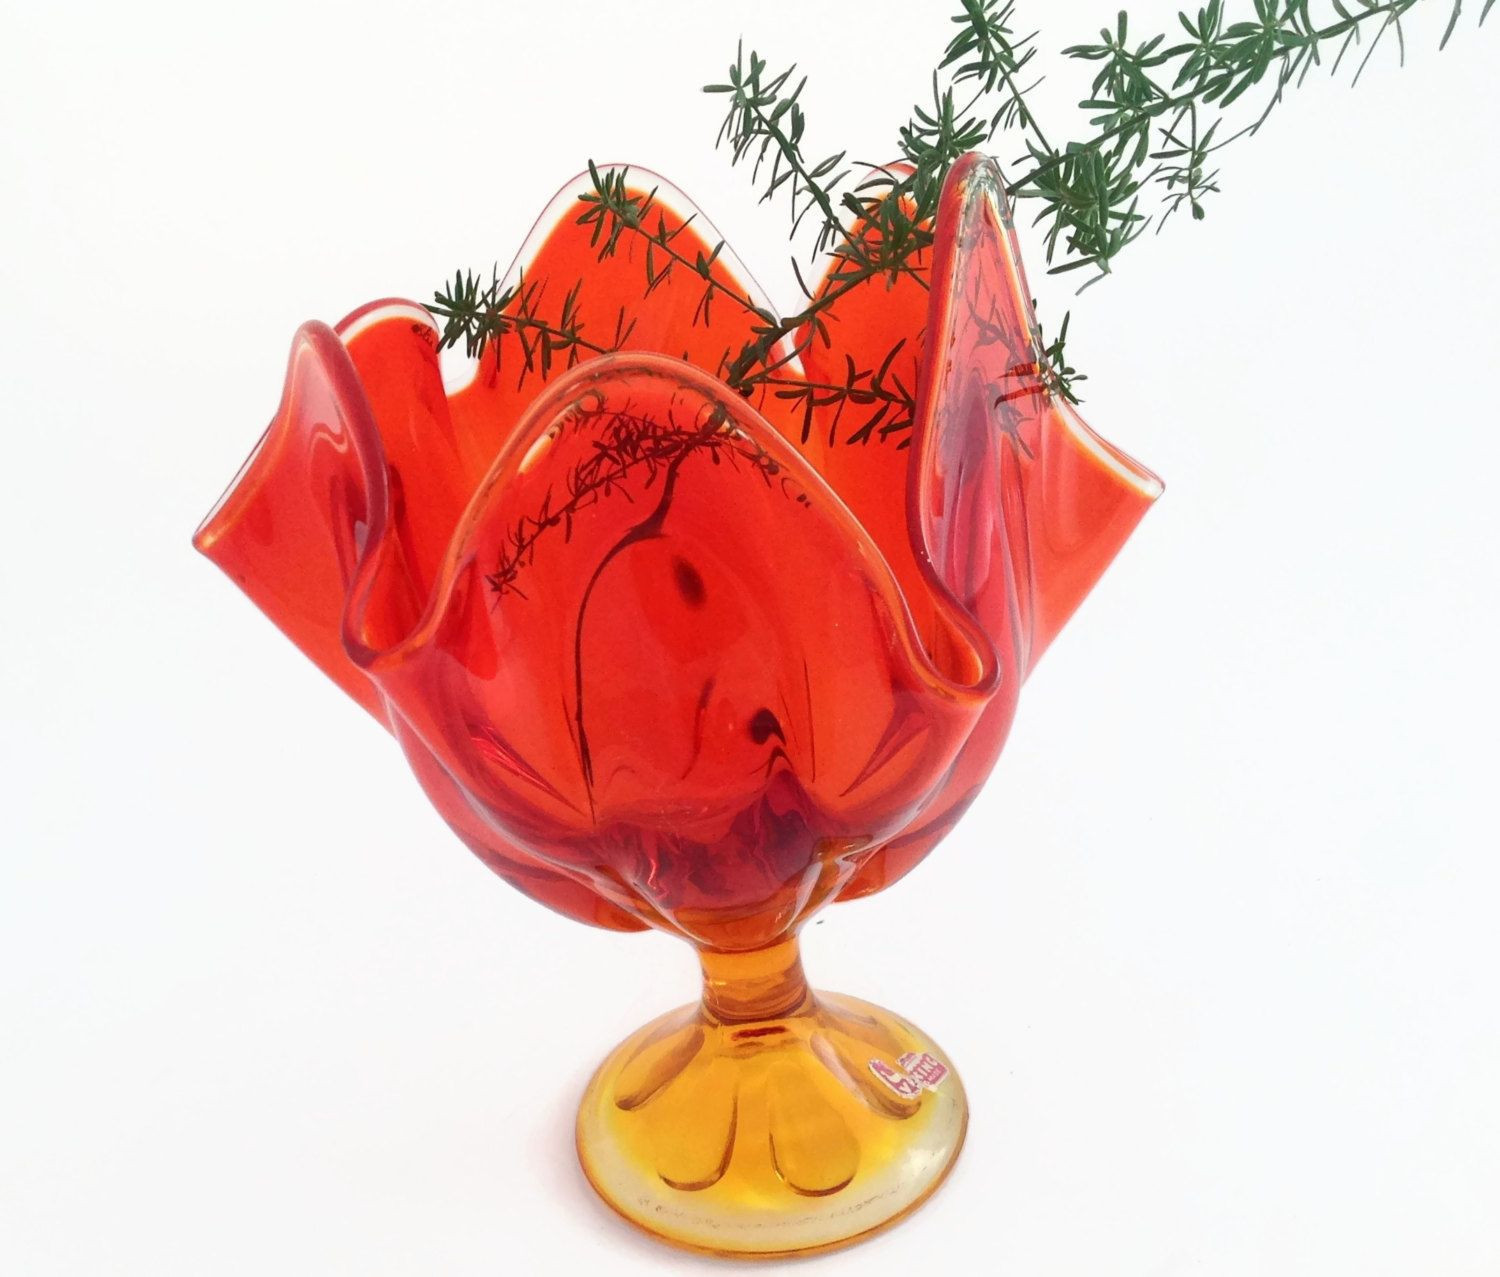 kosta boda vase orange of orange glass bowl image vintage kosta boda amazon sahlin footed pertaining to gallery of orange glass bowl